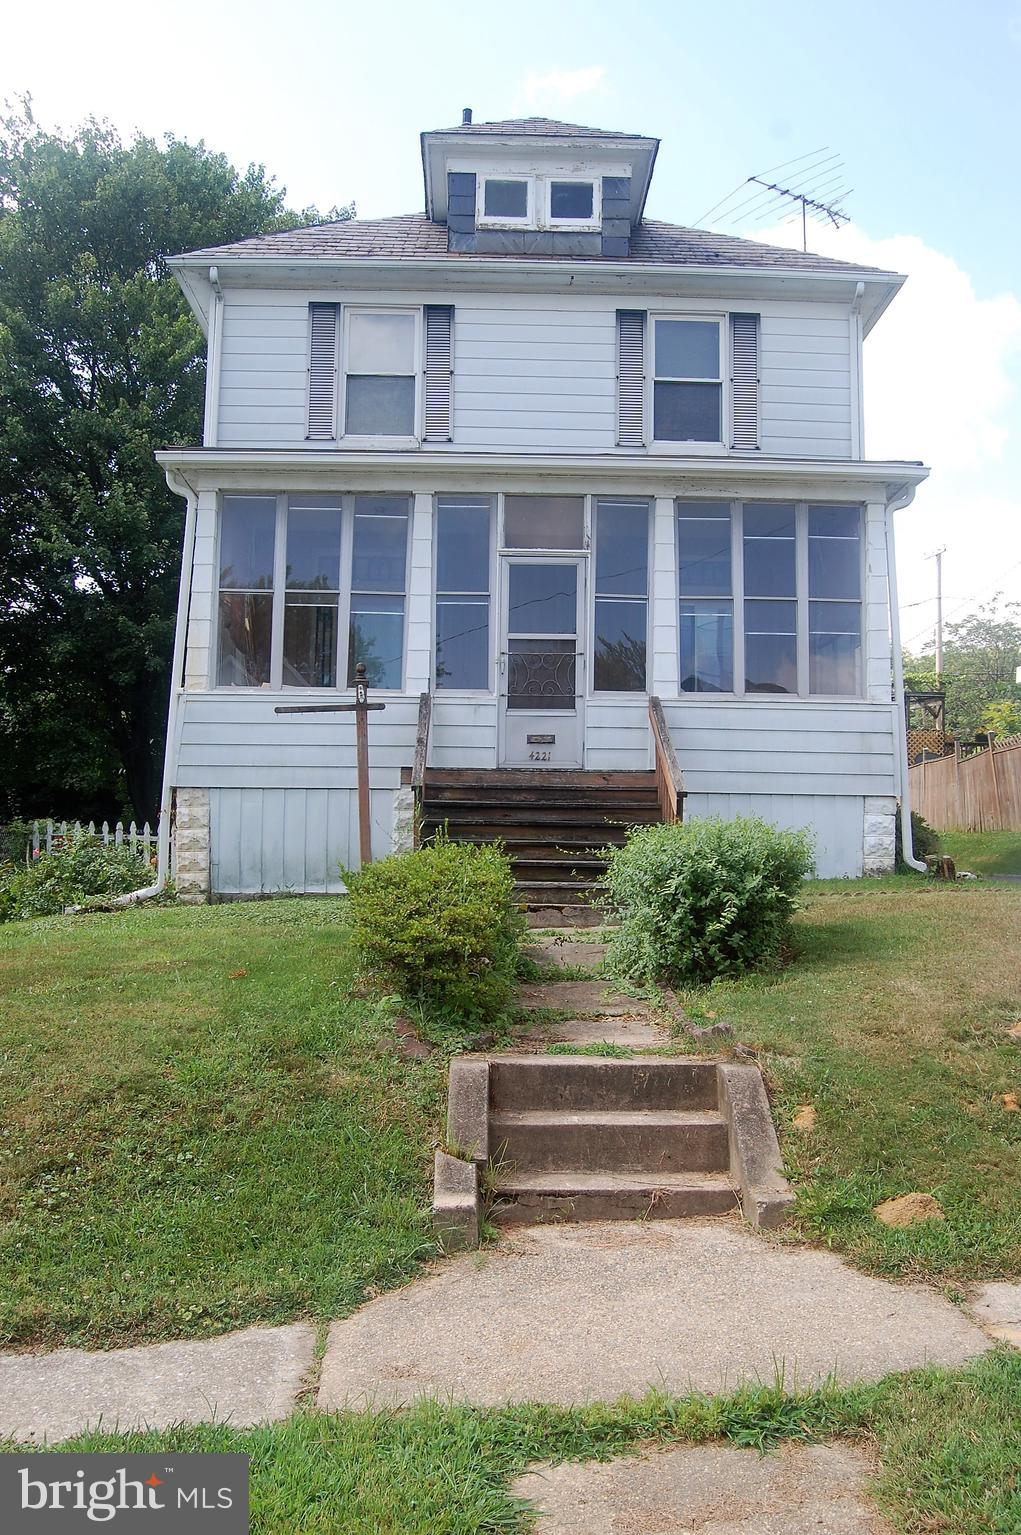 Single family home SOLD AS IS . Features 3 levels.  Partially finished basement with extra possible